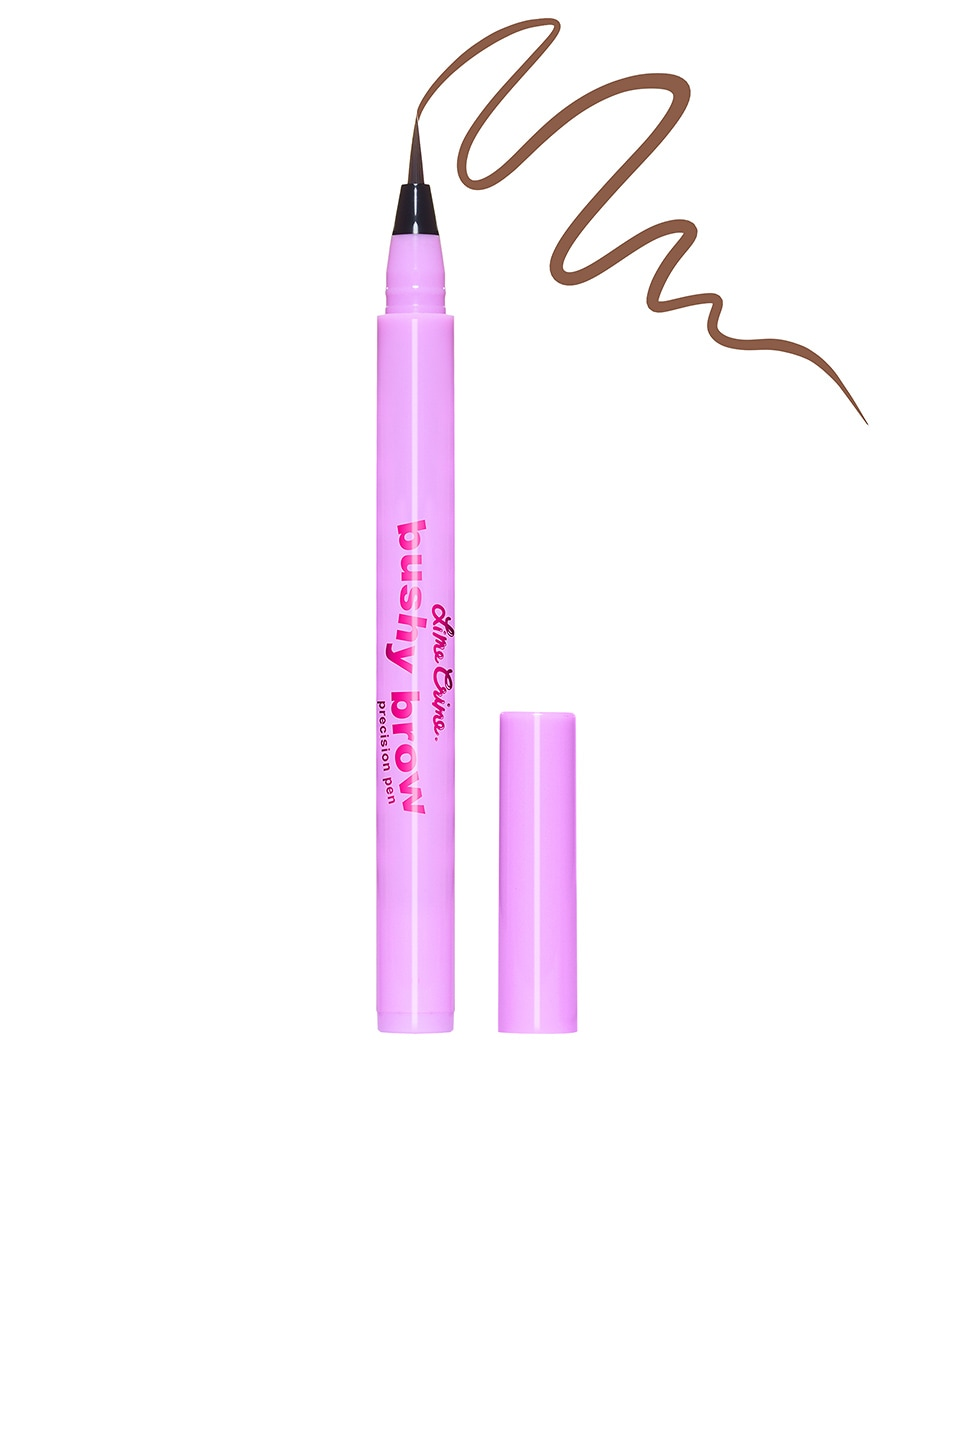 Lime Crime Bushy Brow Precision Pen in Baby Brown